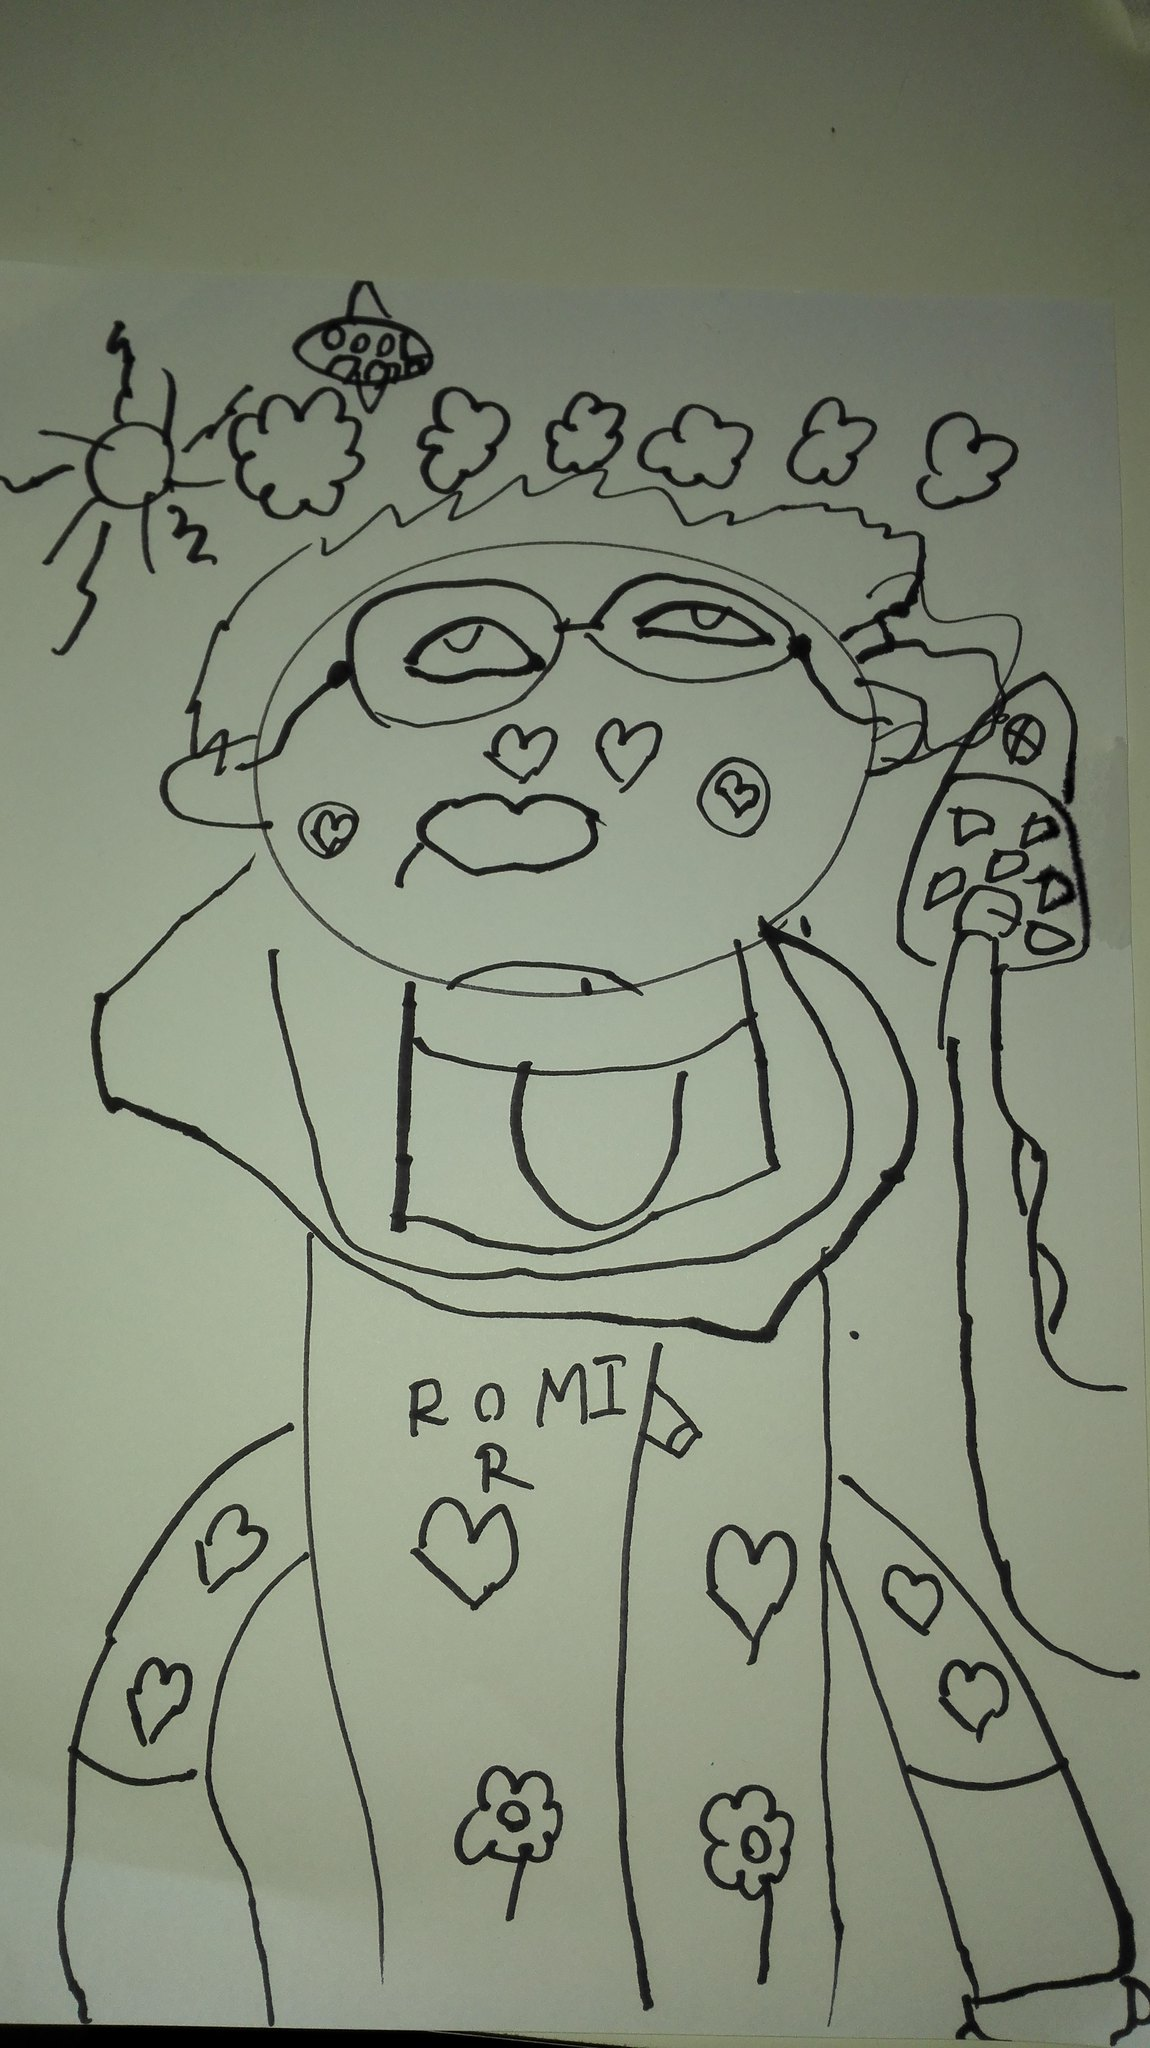 one more portrait of Romir's pather. Romir's drawing on Aug 2016